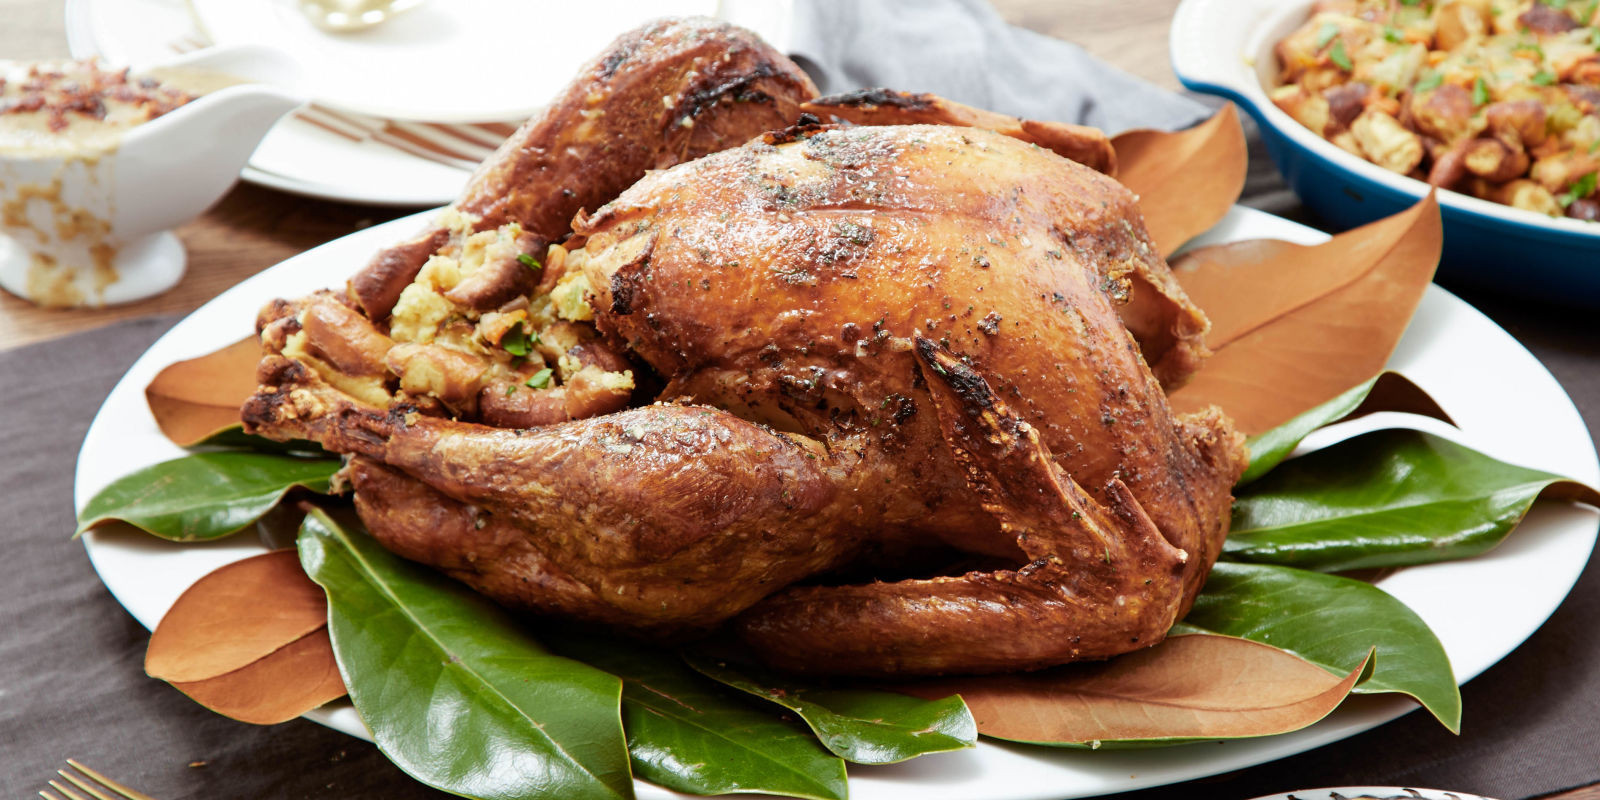 Classic Turkey Recipes Thanksgiving  40 Traditional Thanksgiving Dinner Menu and Recipes